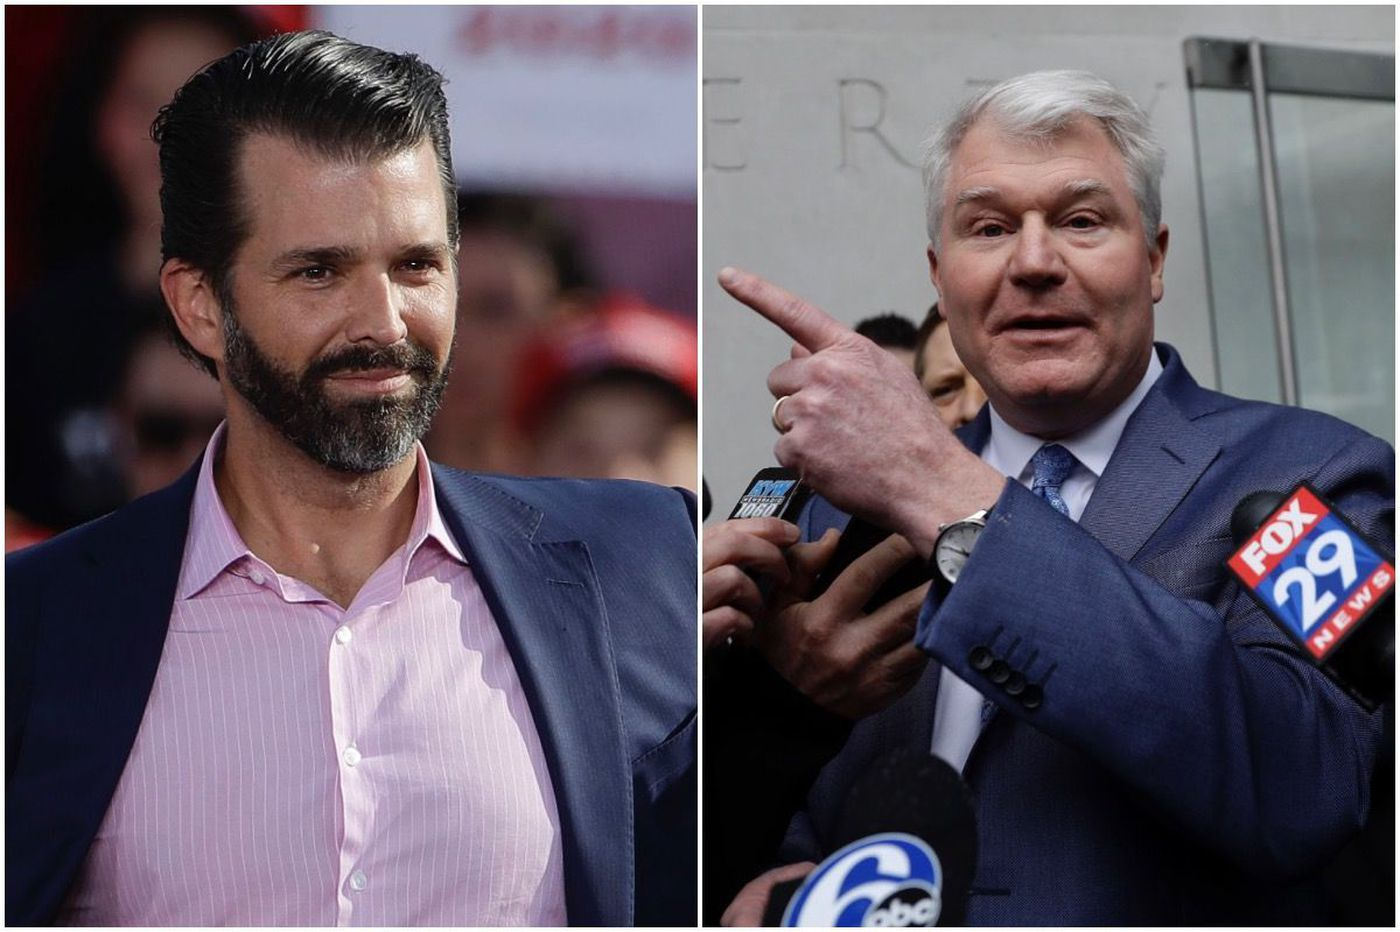 Donald Trump Jr. blasts Philly labor leader 'Johnny Doc' as a 'swamp creature.' He just visited the White House.